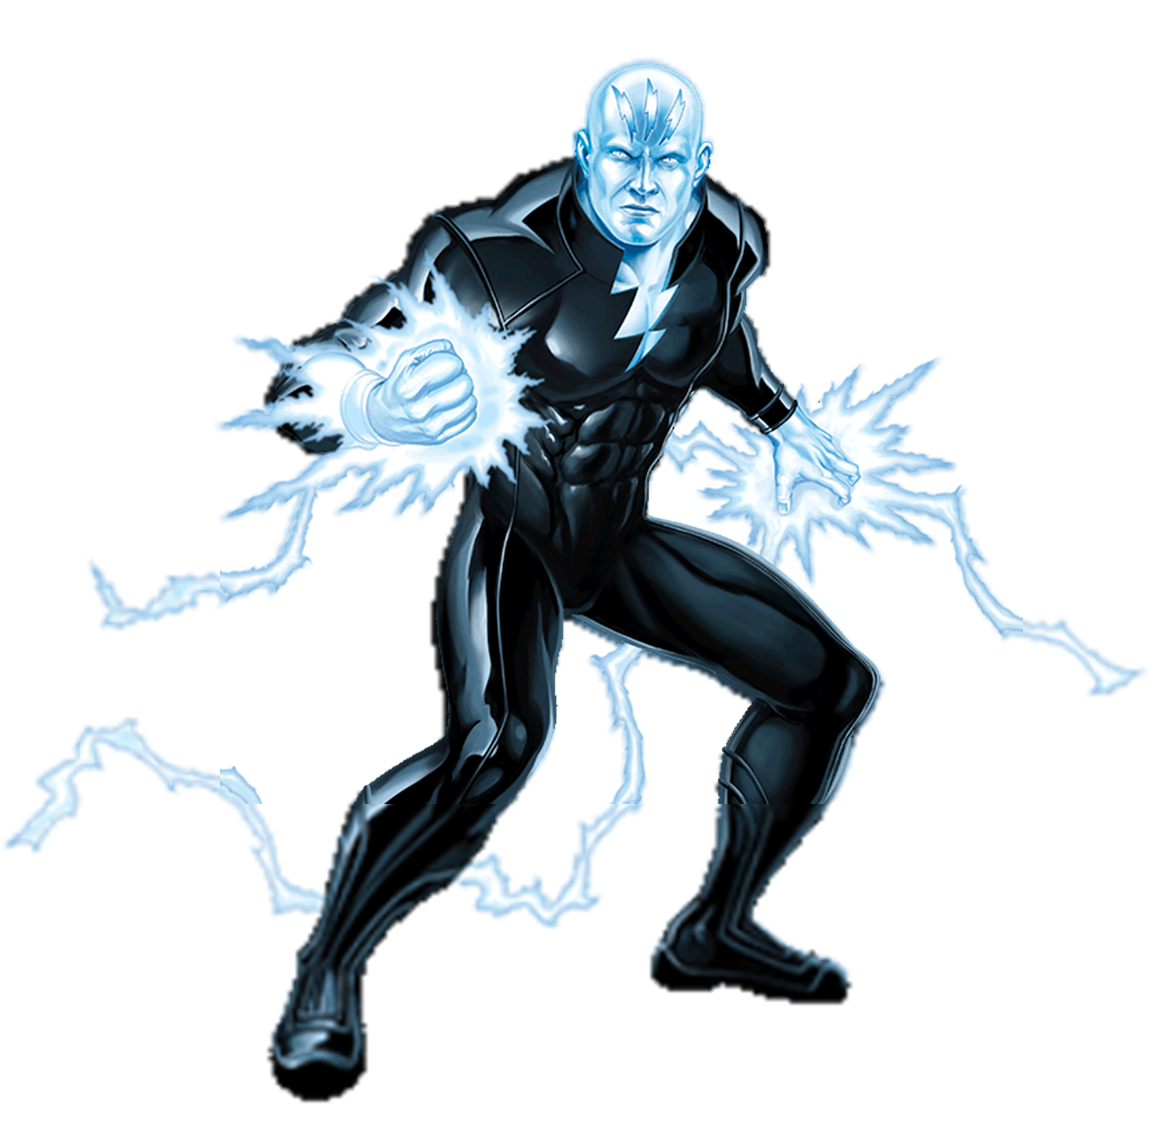 Electro_2_0.png